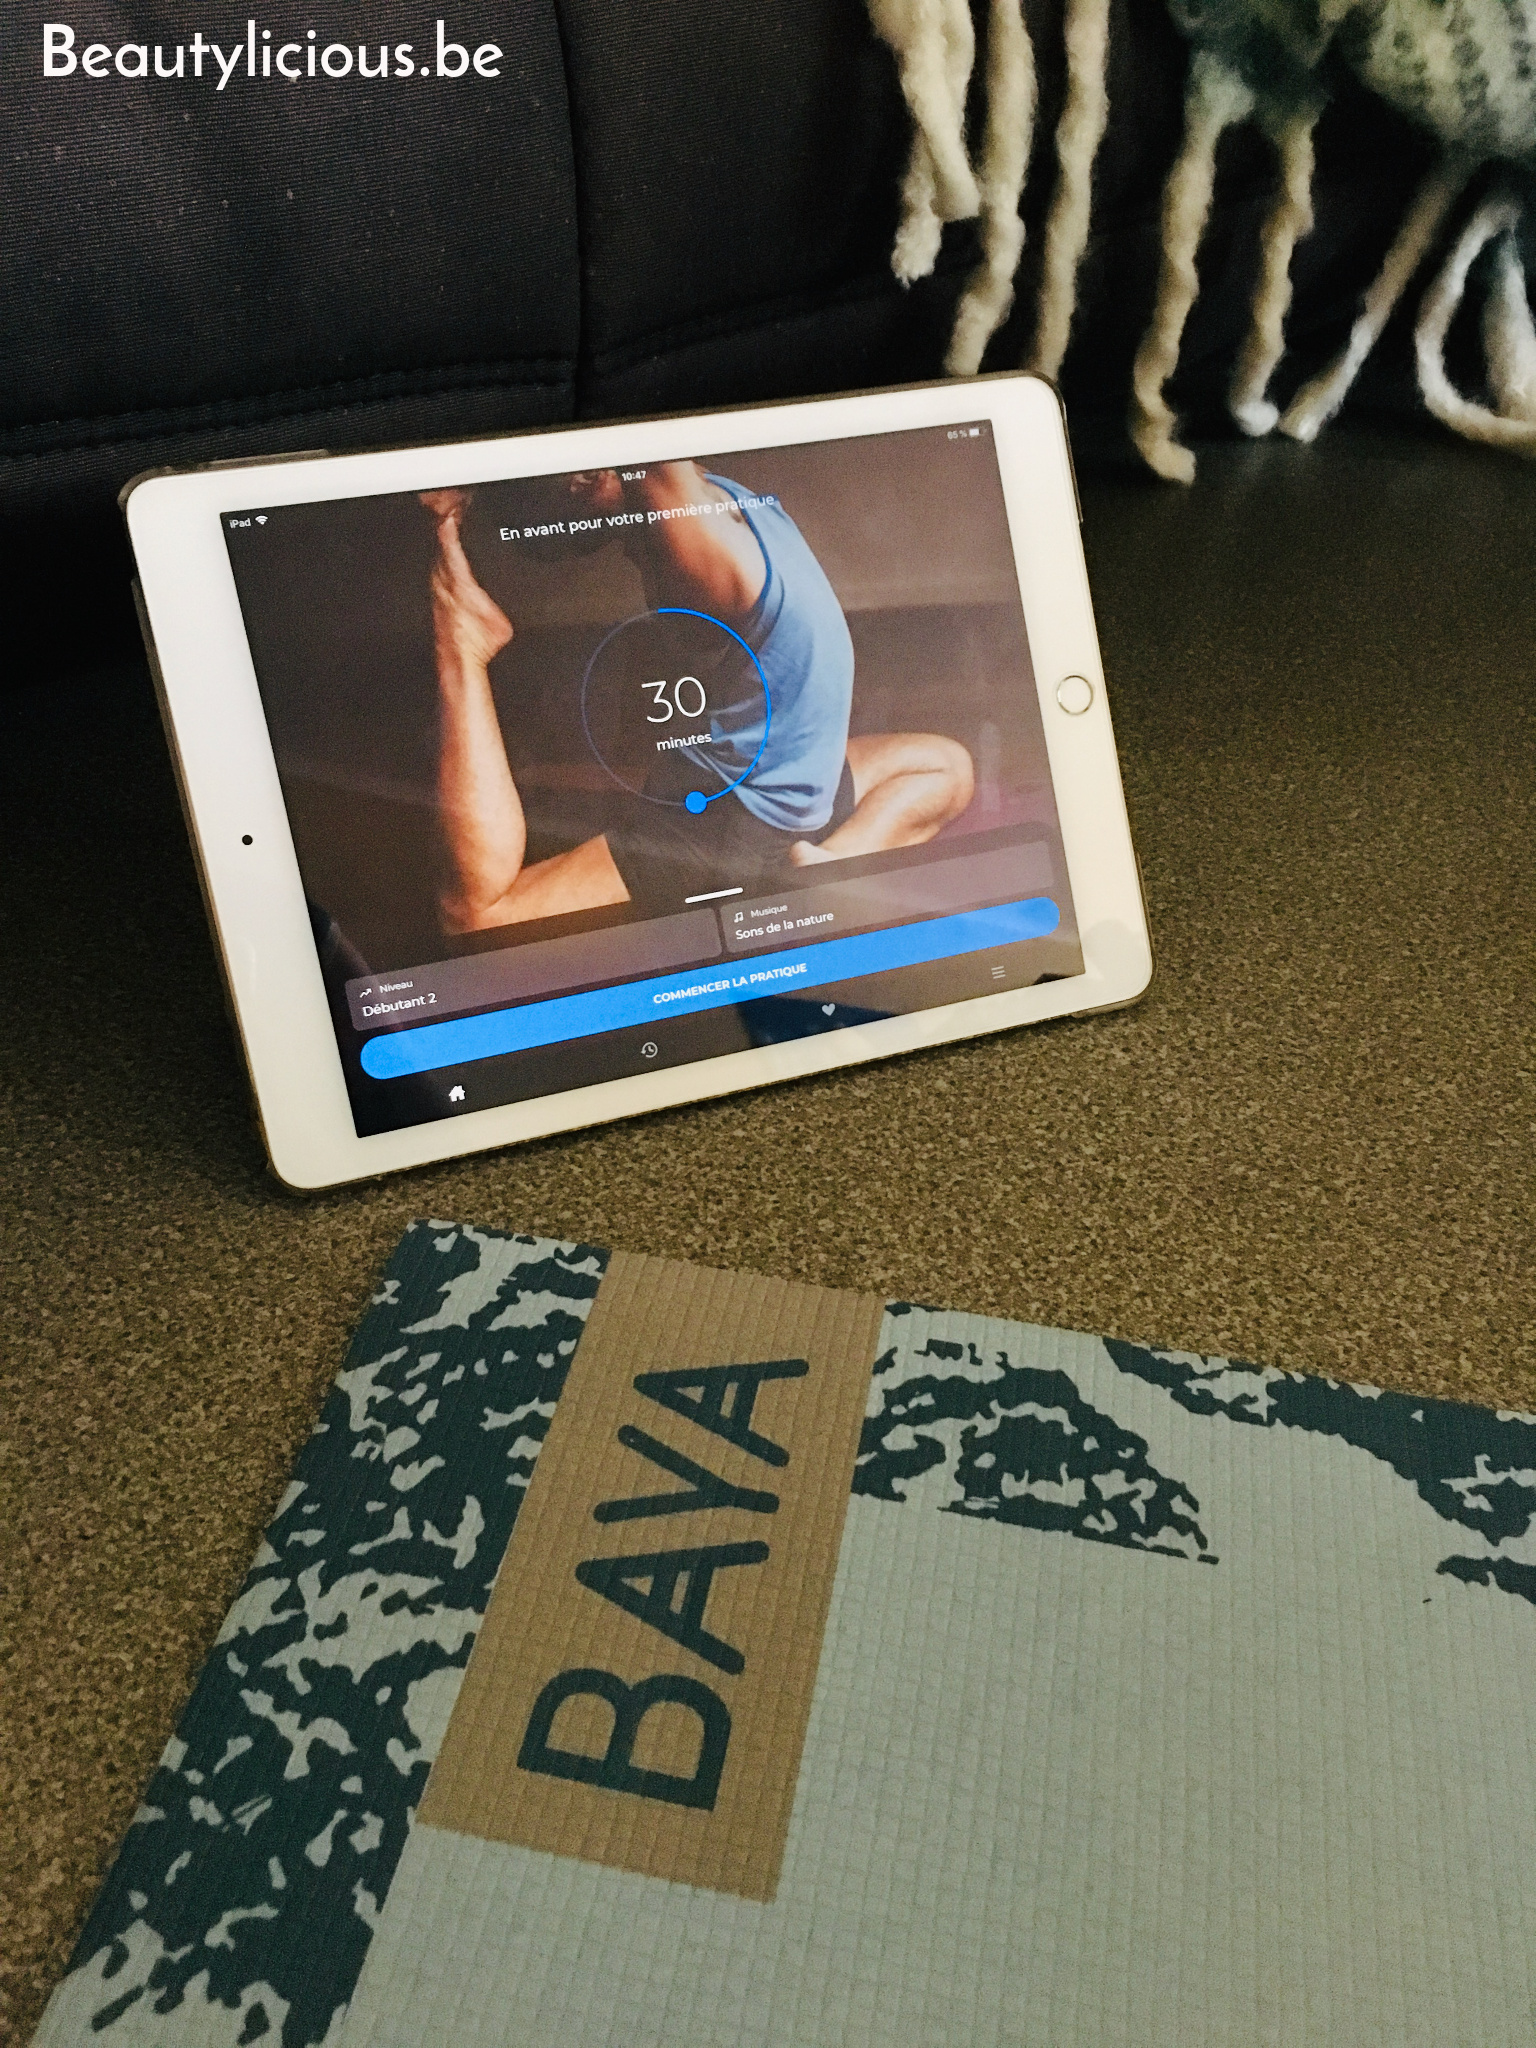 Pratique du yoga à domicile avec l'application Down Dog